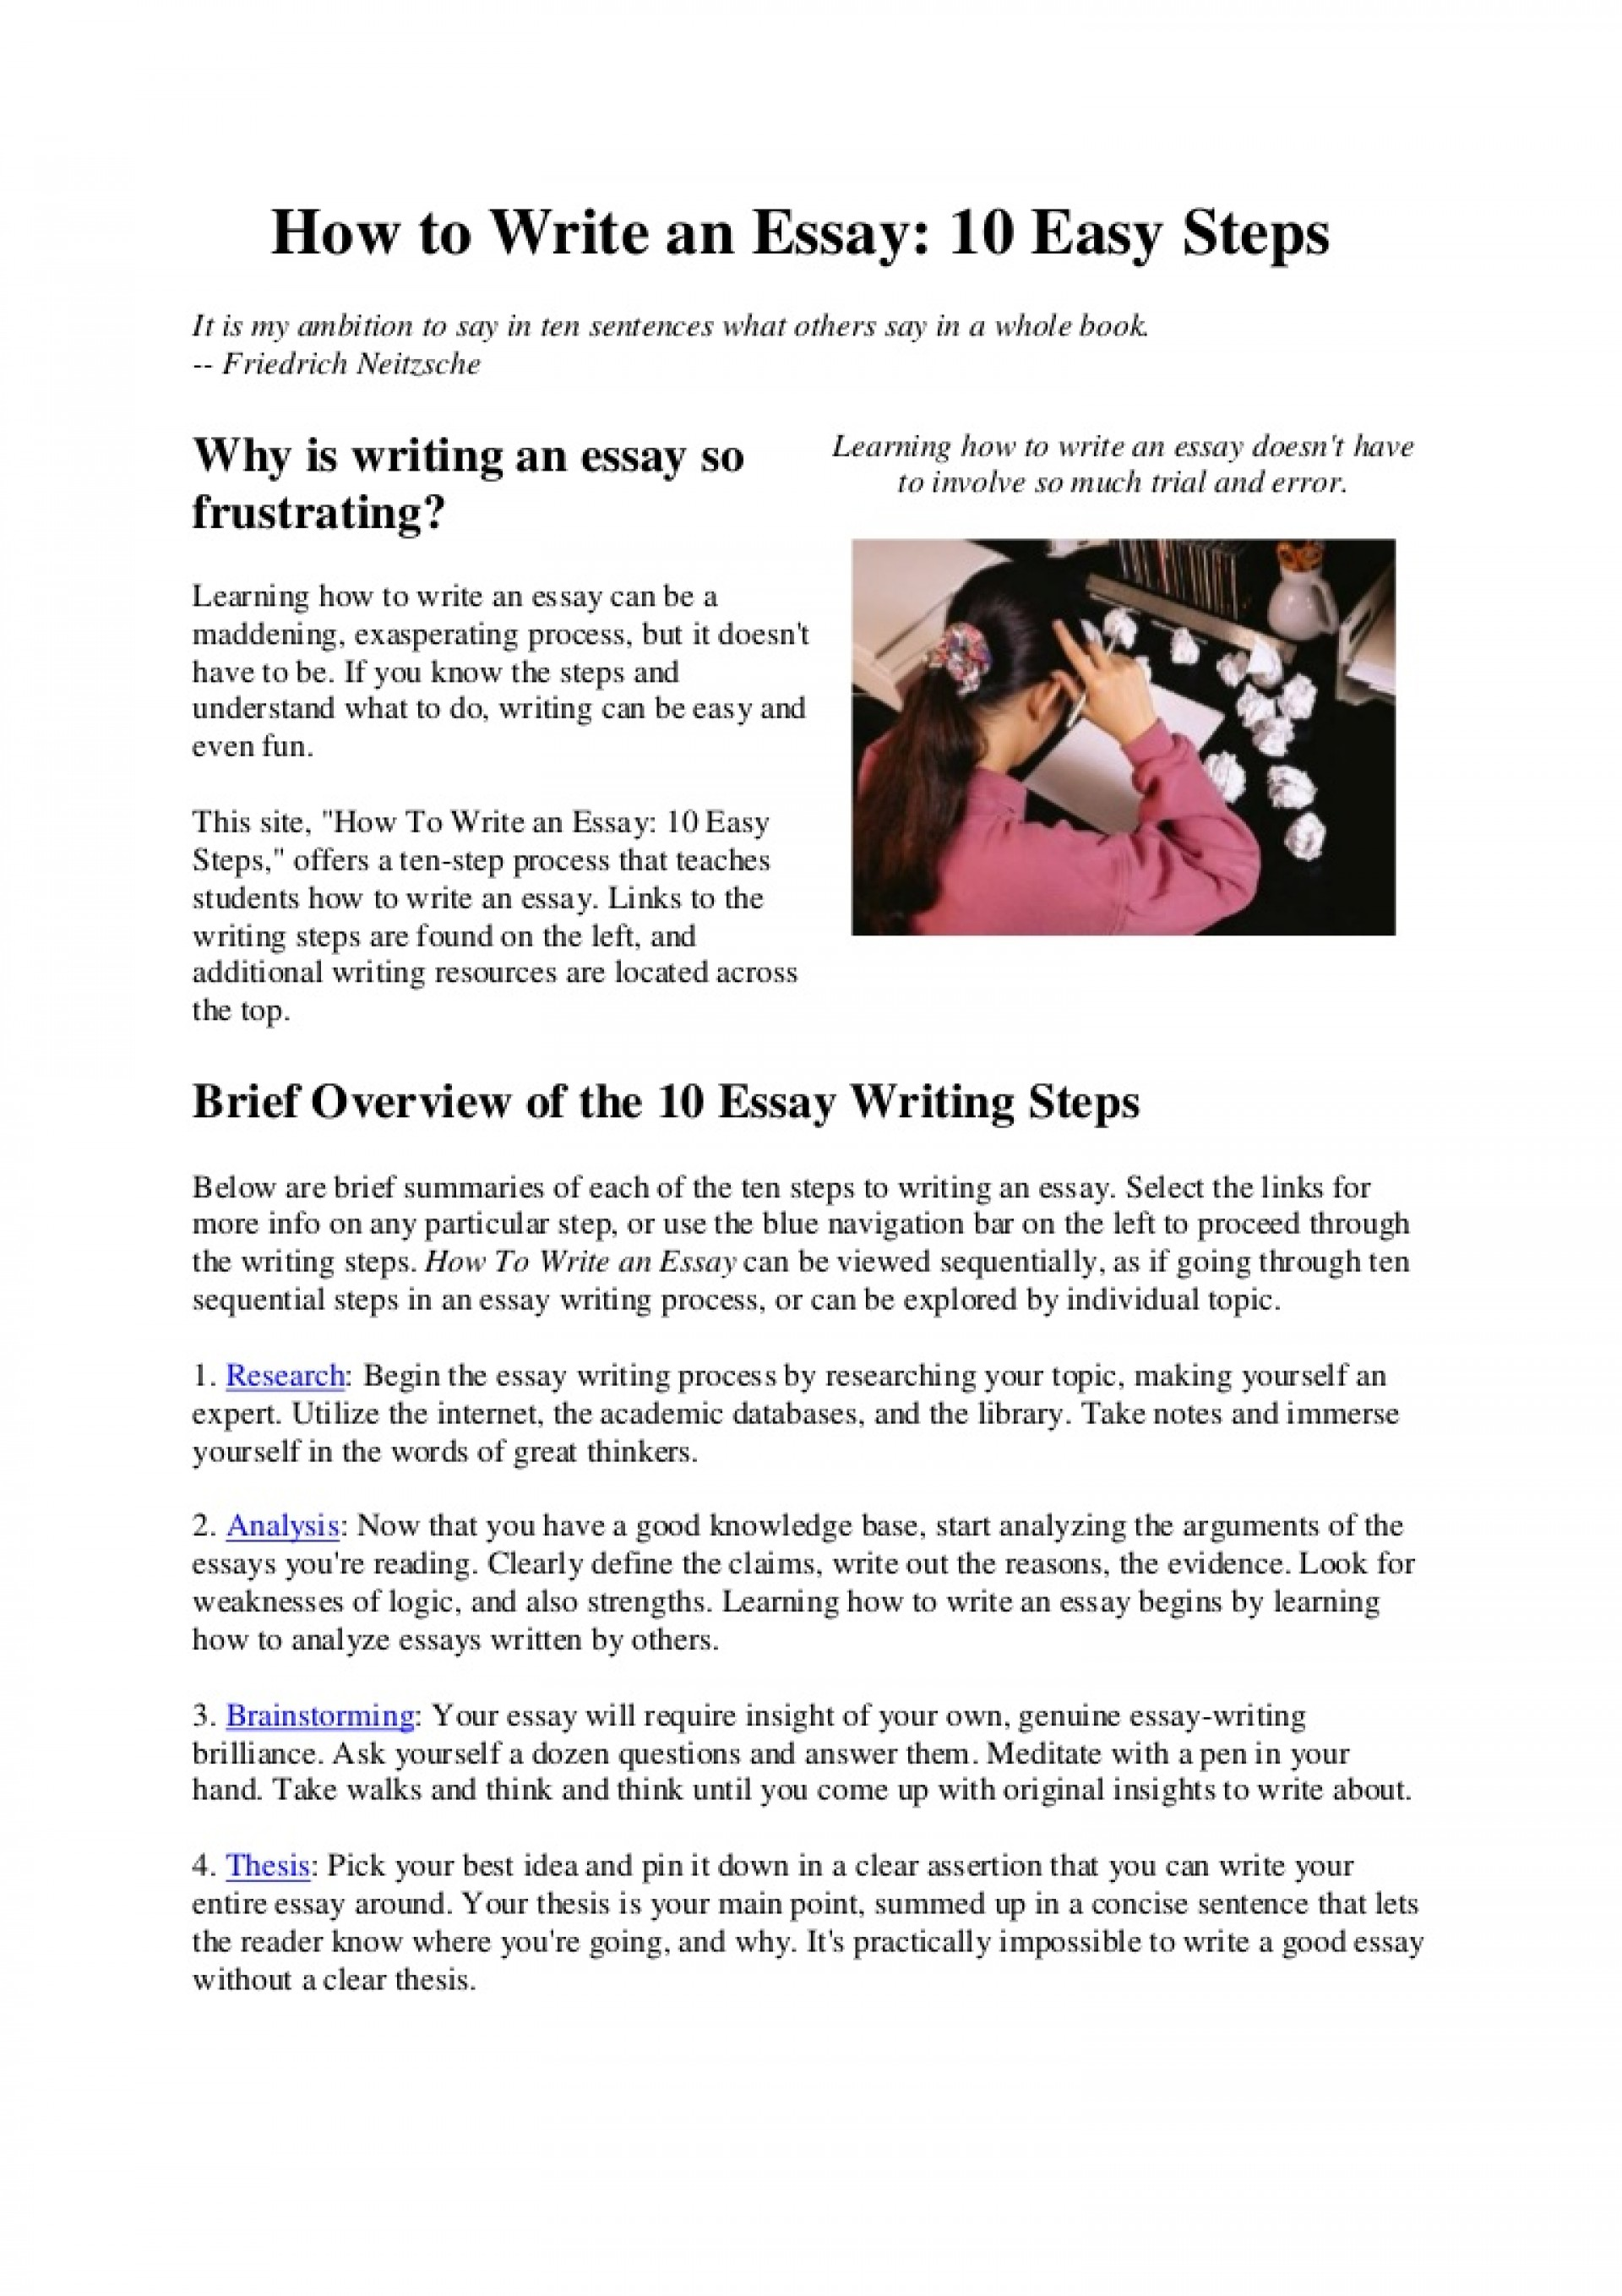 003 Cause And Effect Essay Should Sequential Meaning It Example Howtowriteanessay Thumbnail Wonderful A Be 1920